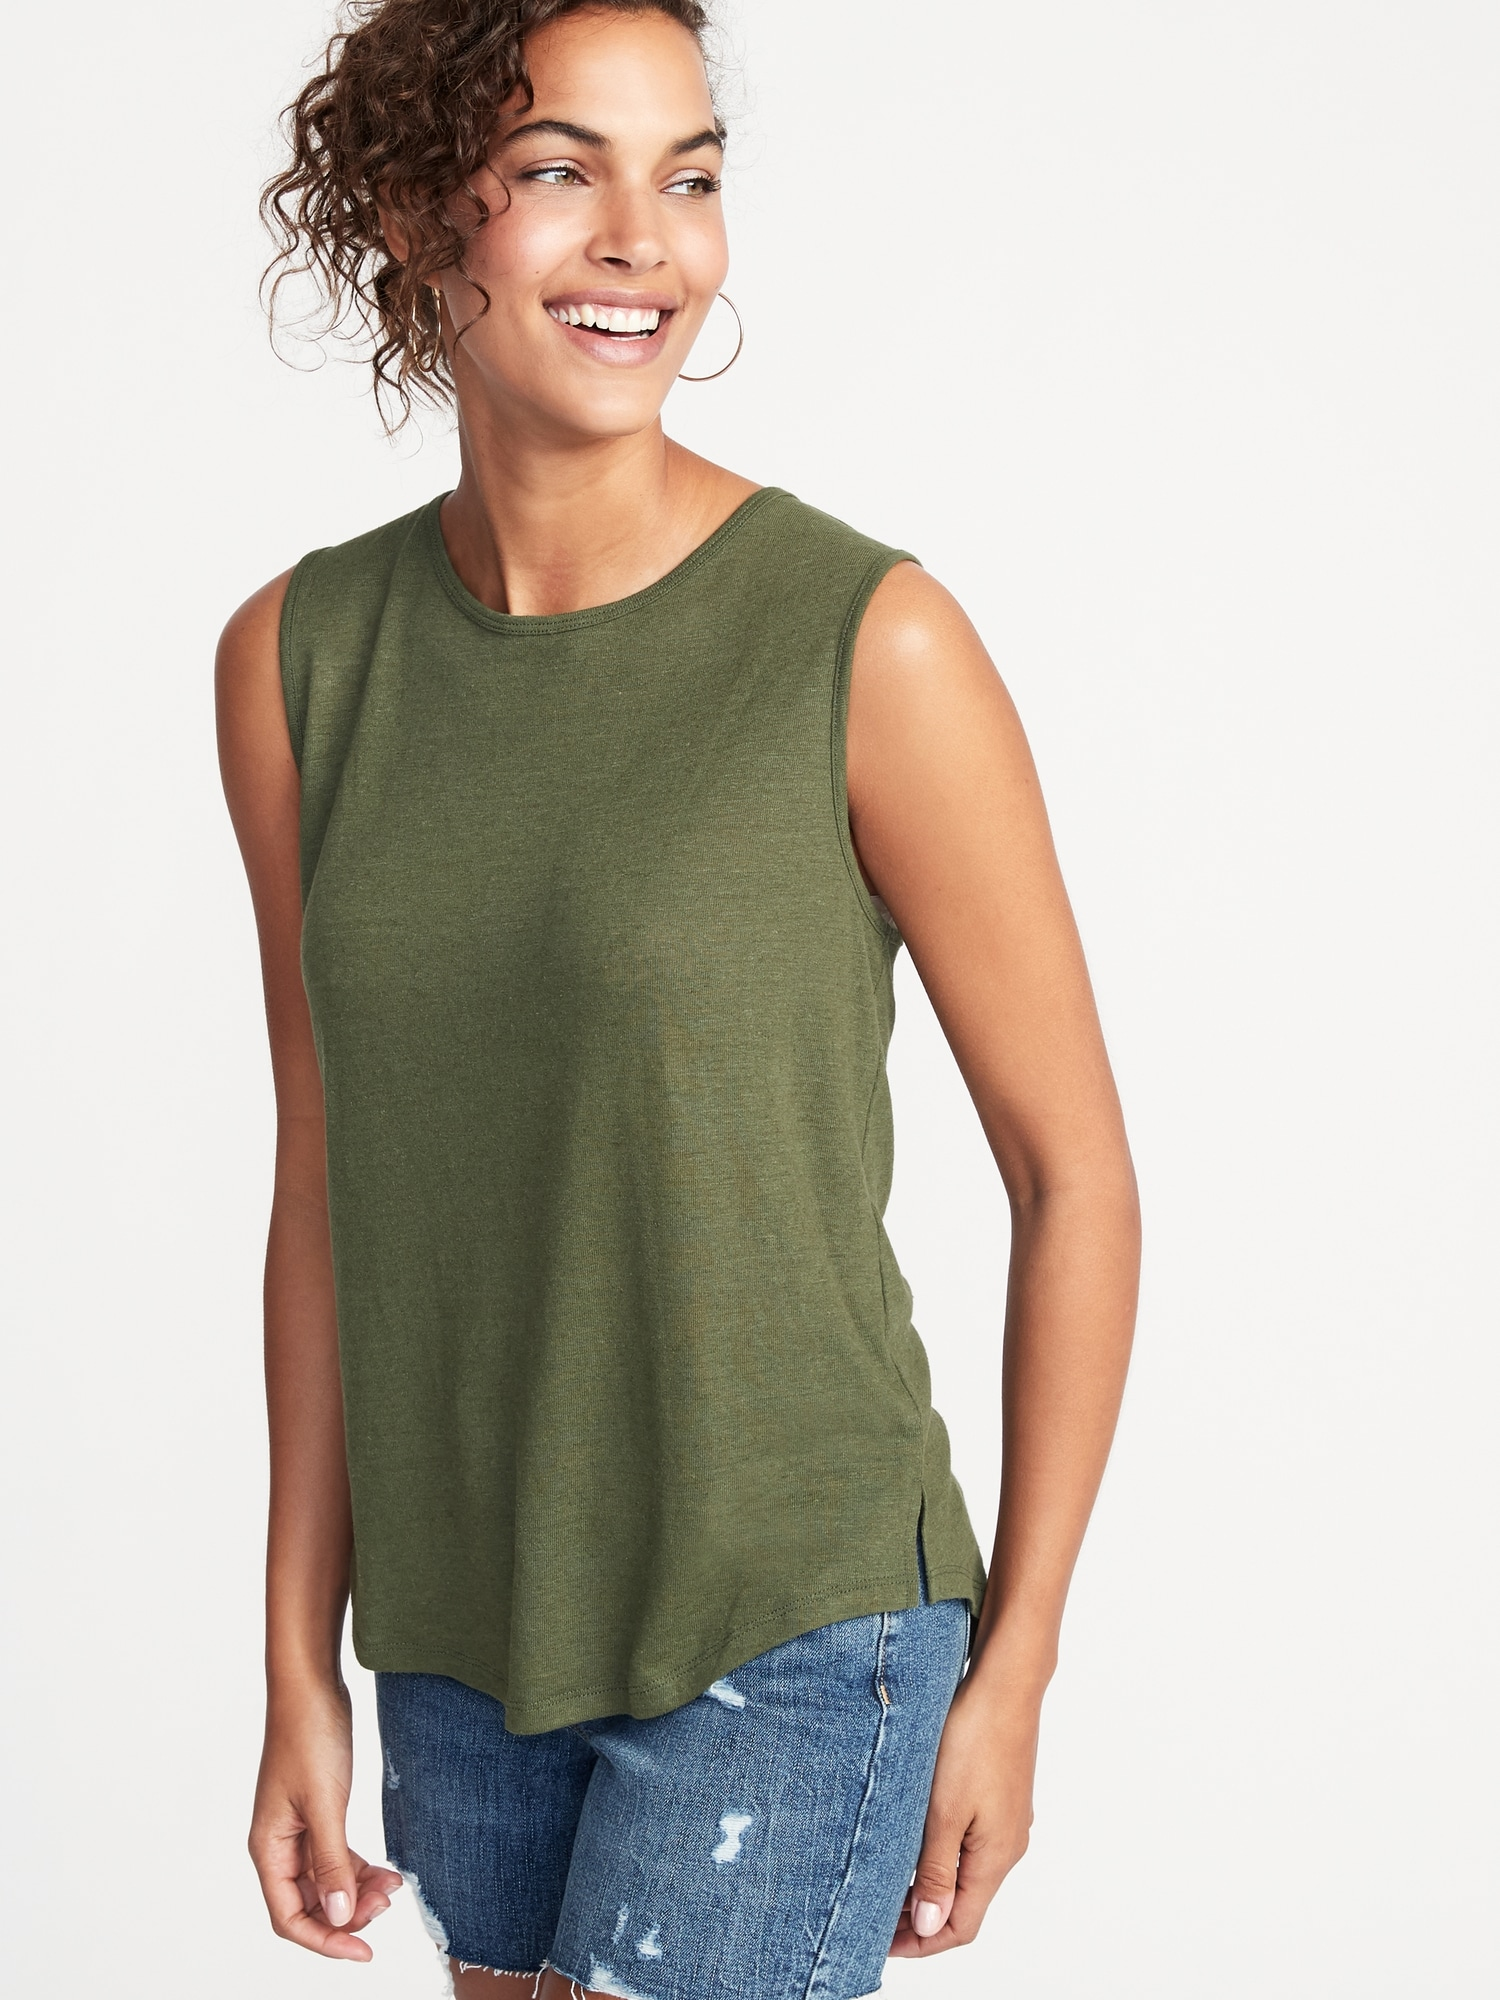 f5f8eac8de36 Relaxed Tie-Back Linen-Blend Sleeveless Top For Women   Old Navy